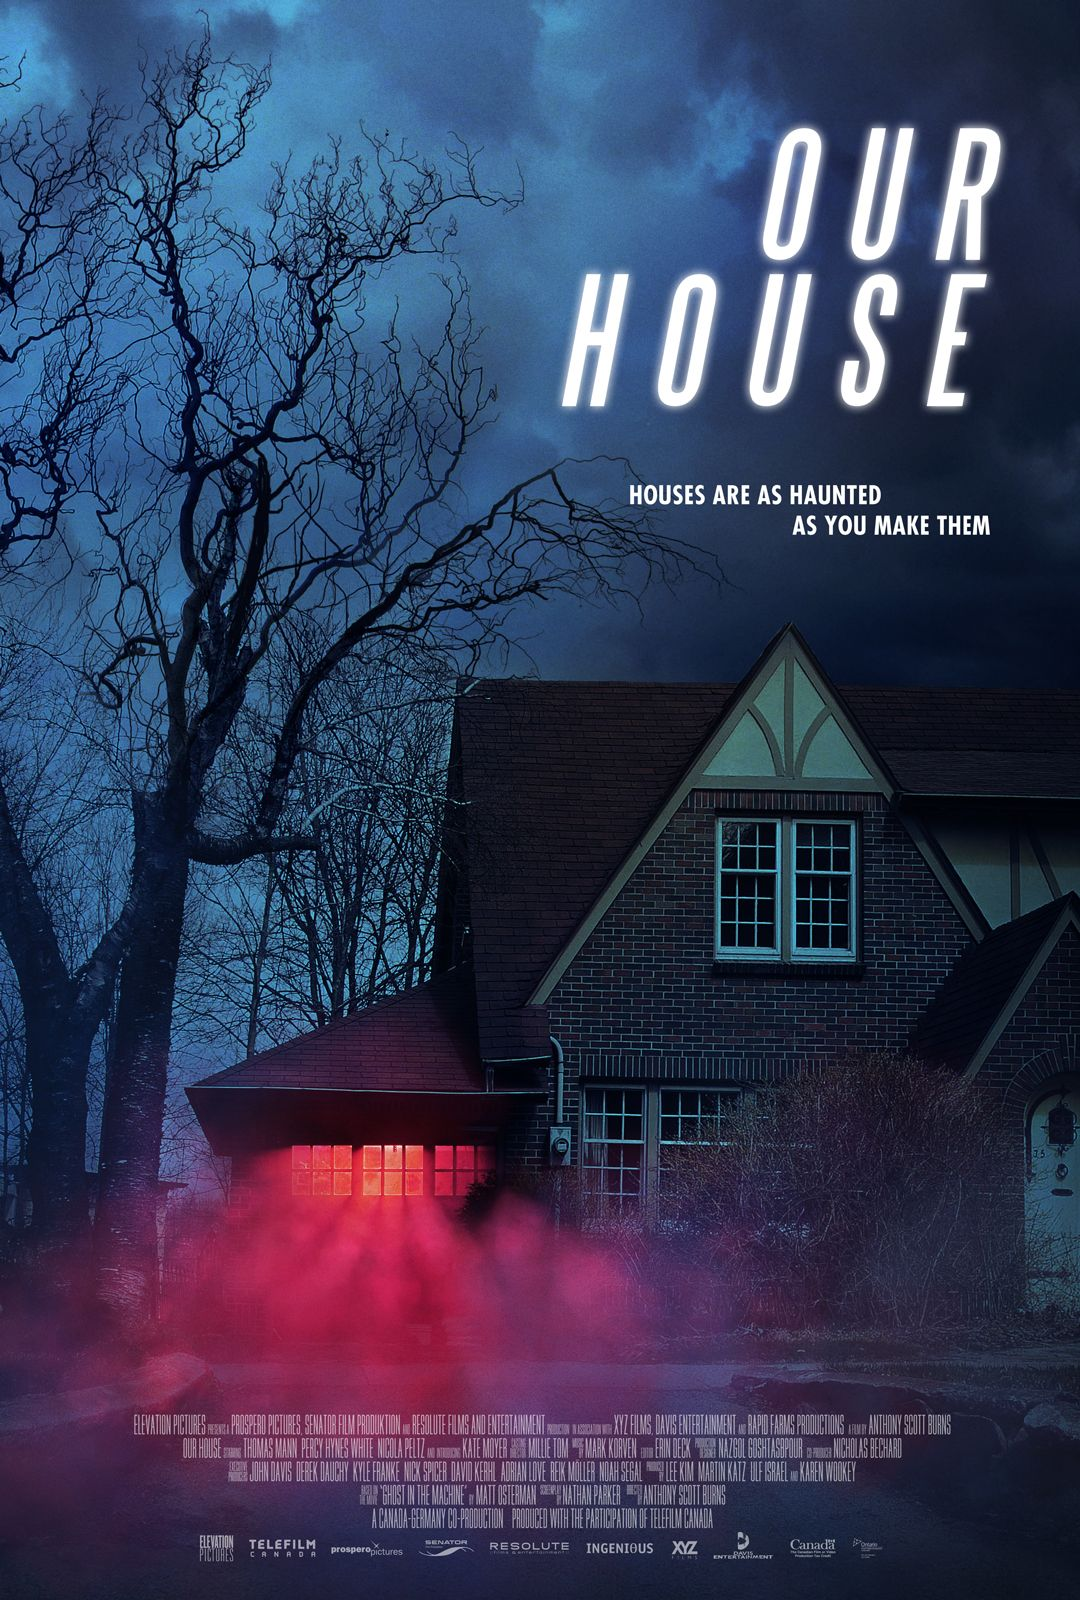 Our House movie trailer